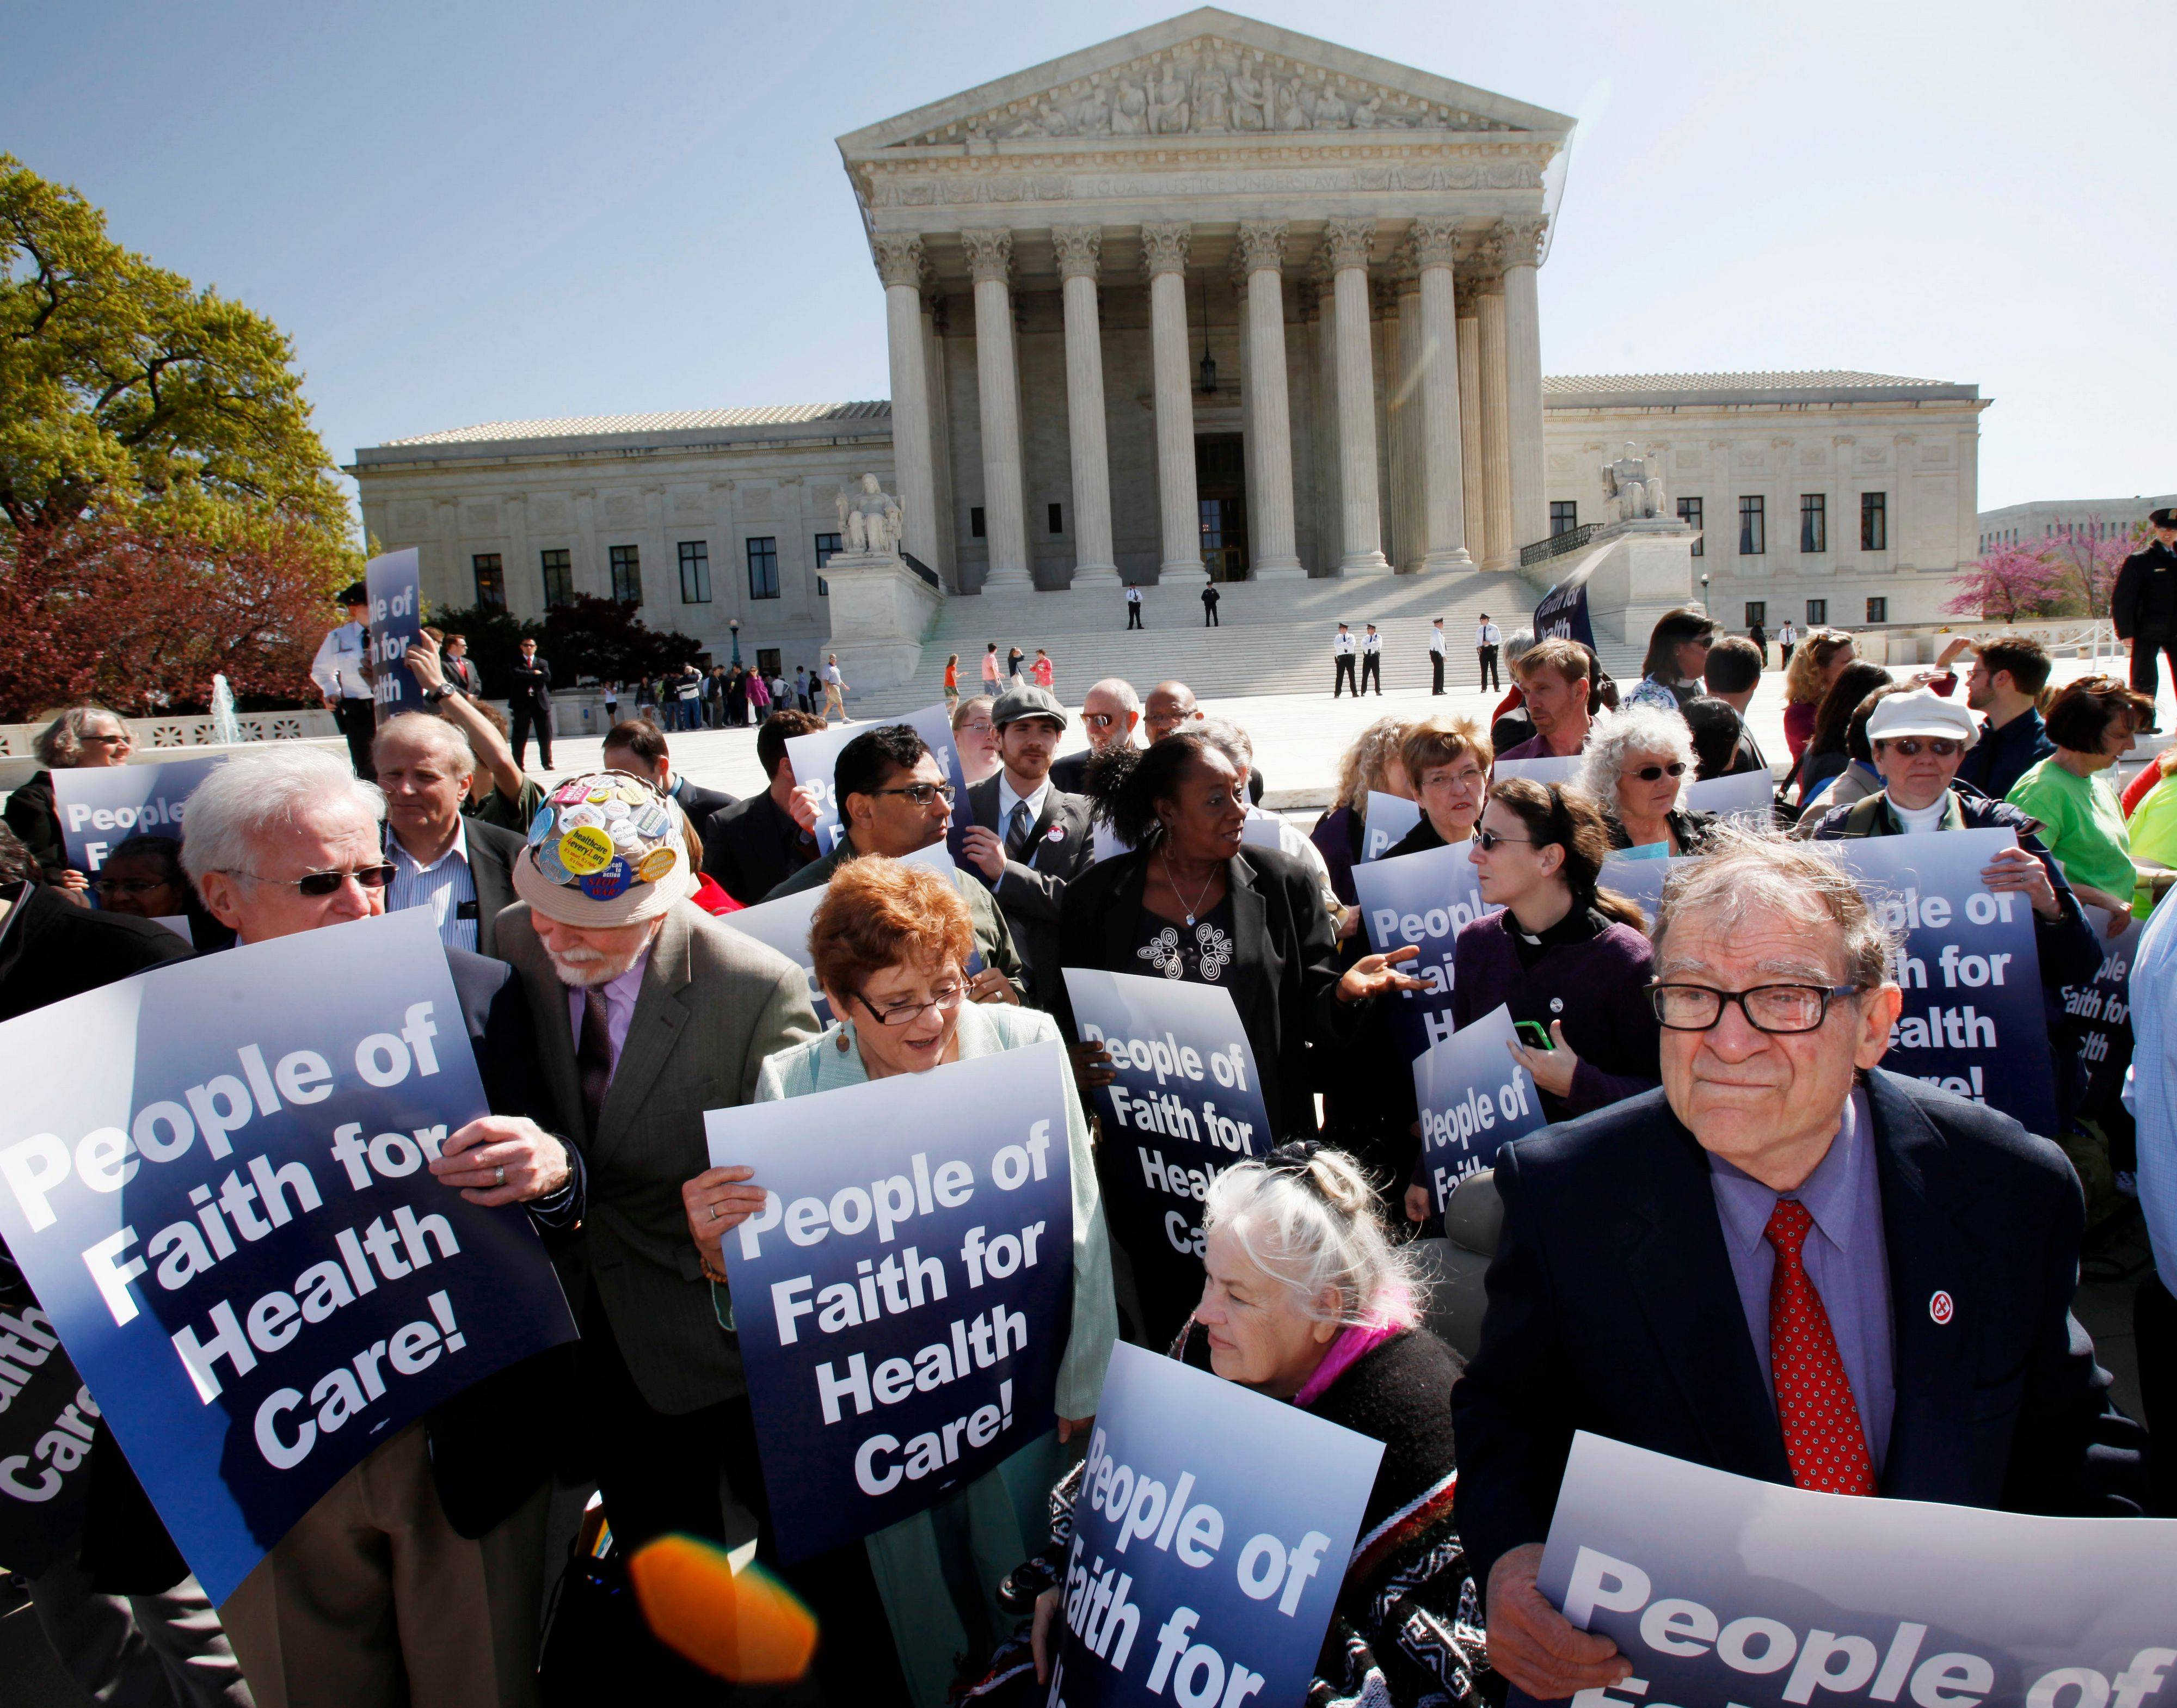 Protesters in favor of health care reform demonstrate outside of the Supreme Court in Washington, Monday, as a hearing on President Obama's health care legislation began.